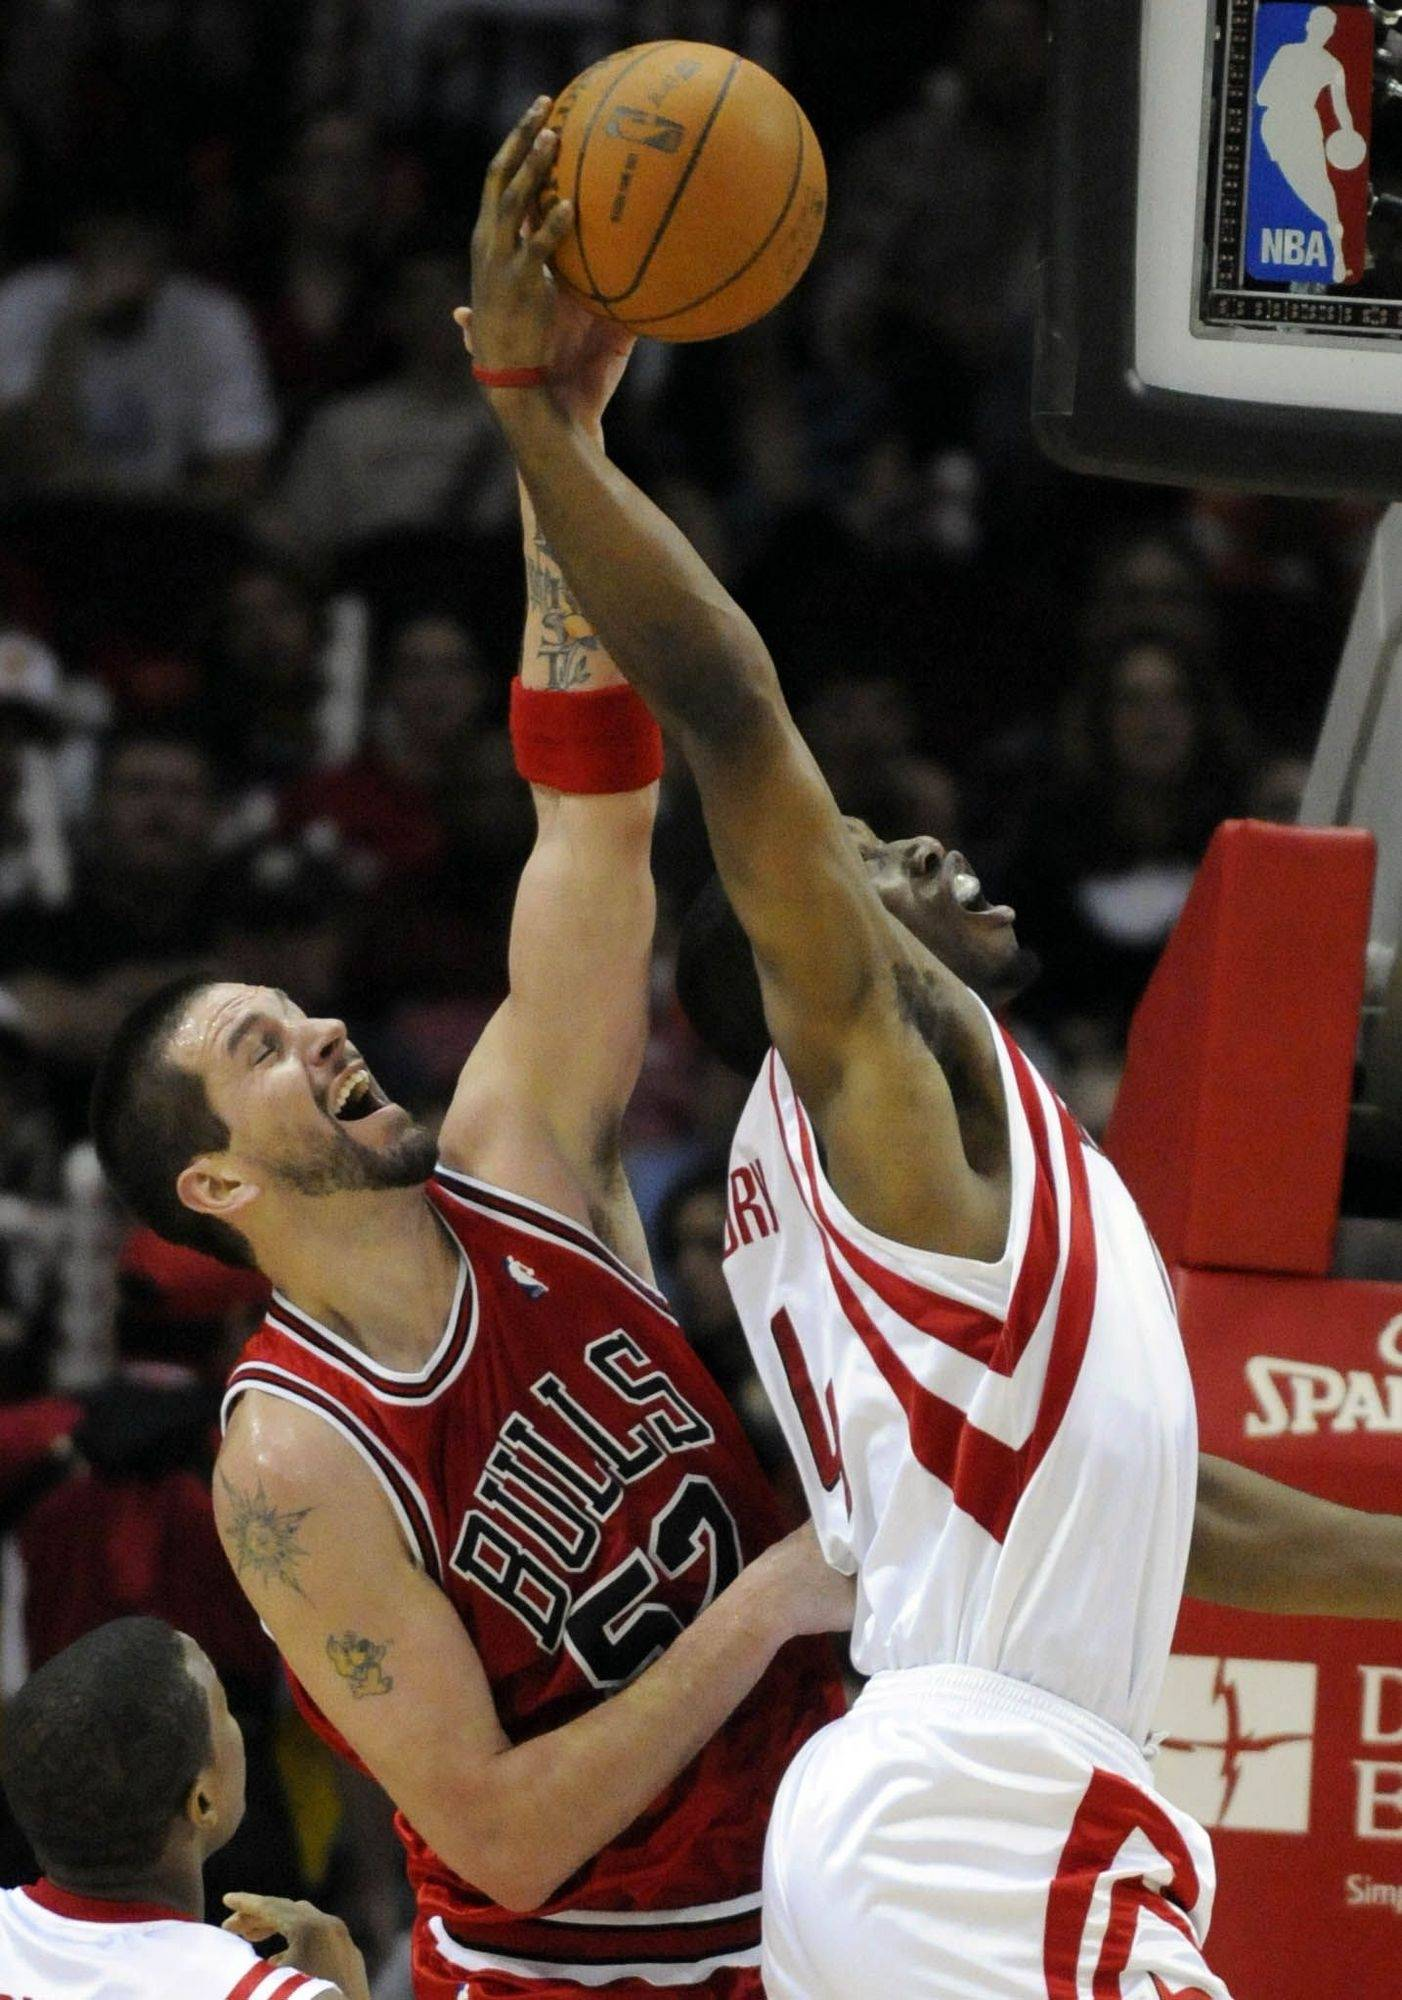 Brad Miller, left, hit 25 points to help the Bulls beat the Rockets on Saturday night.